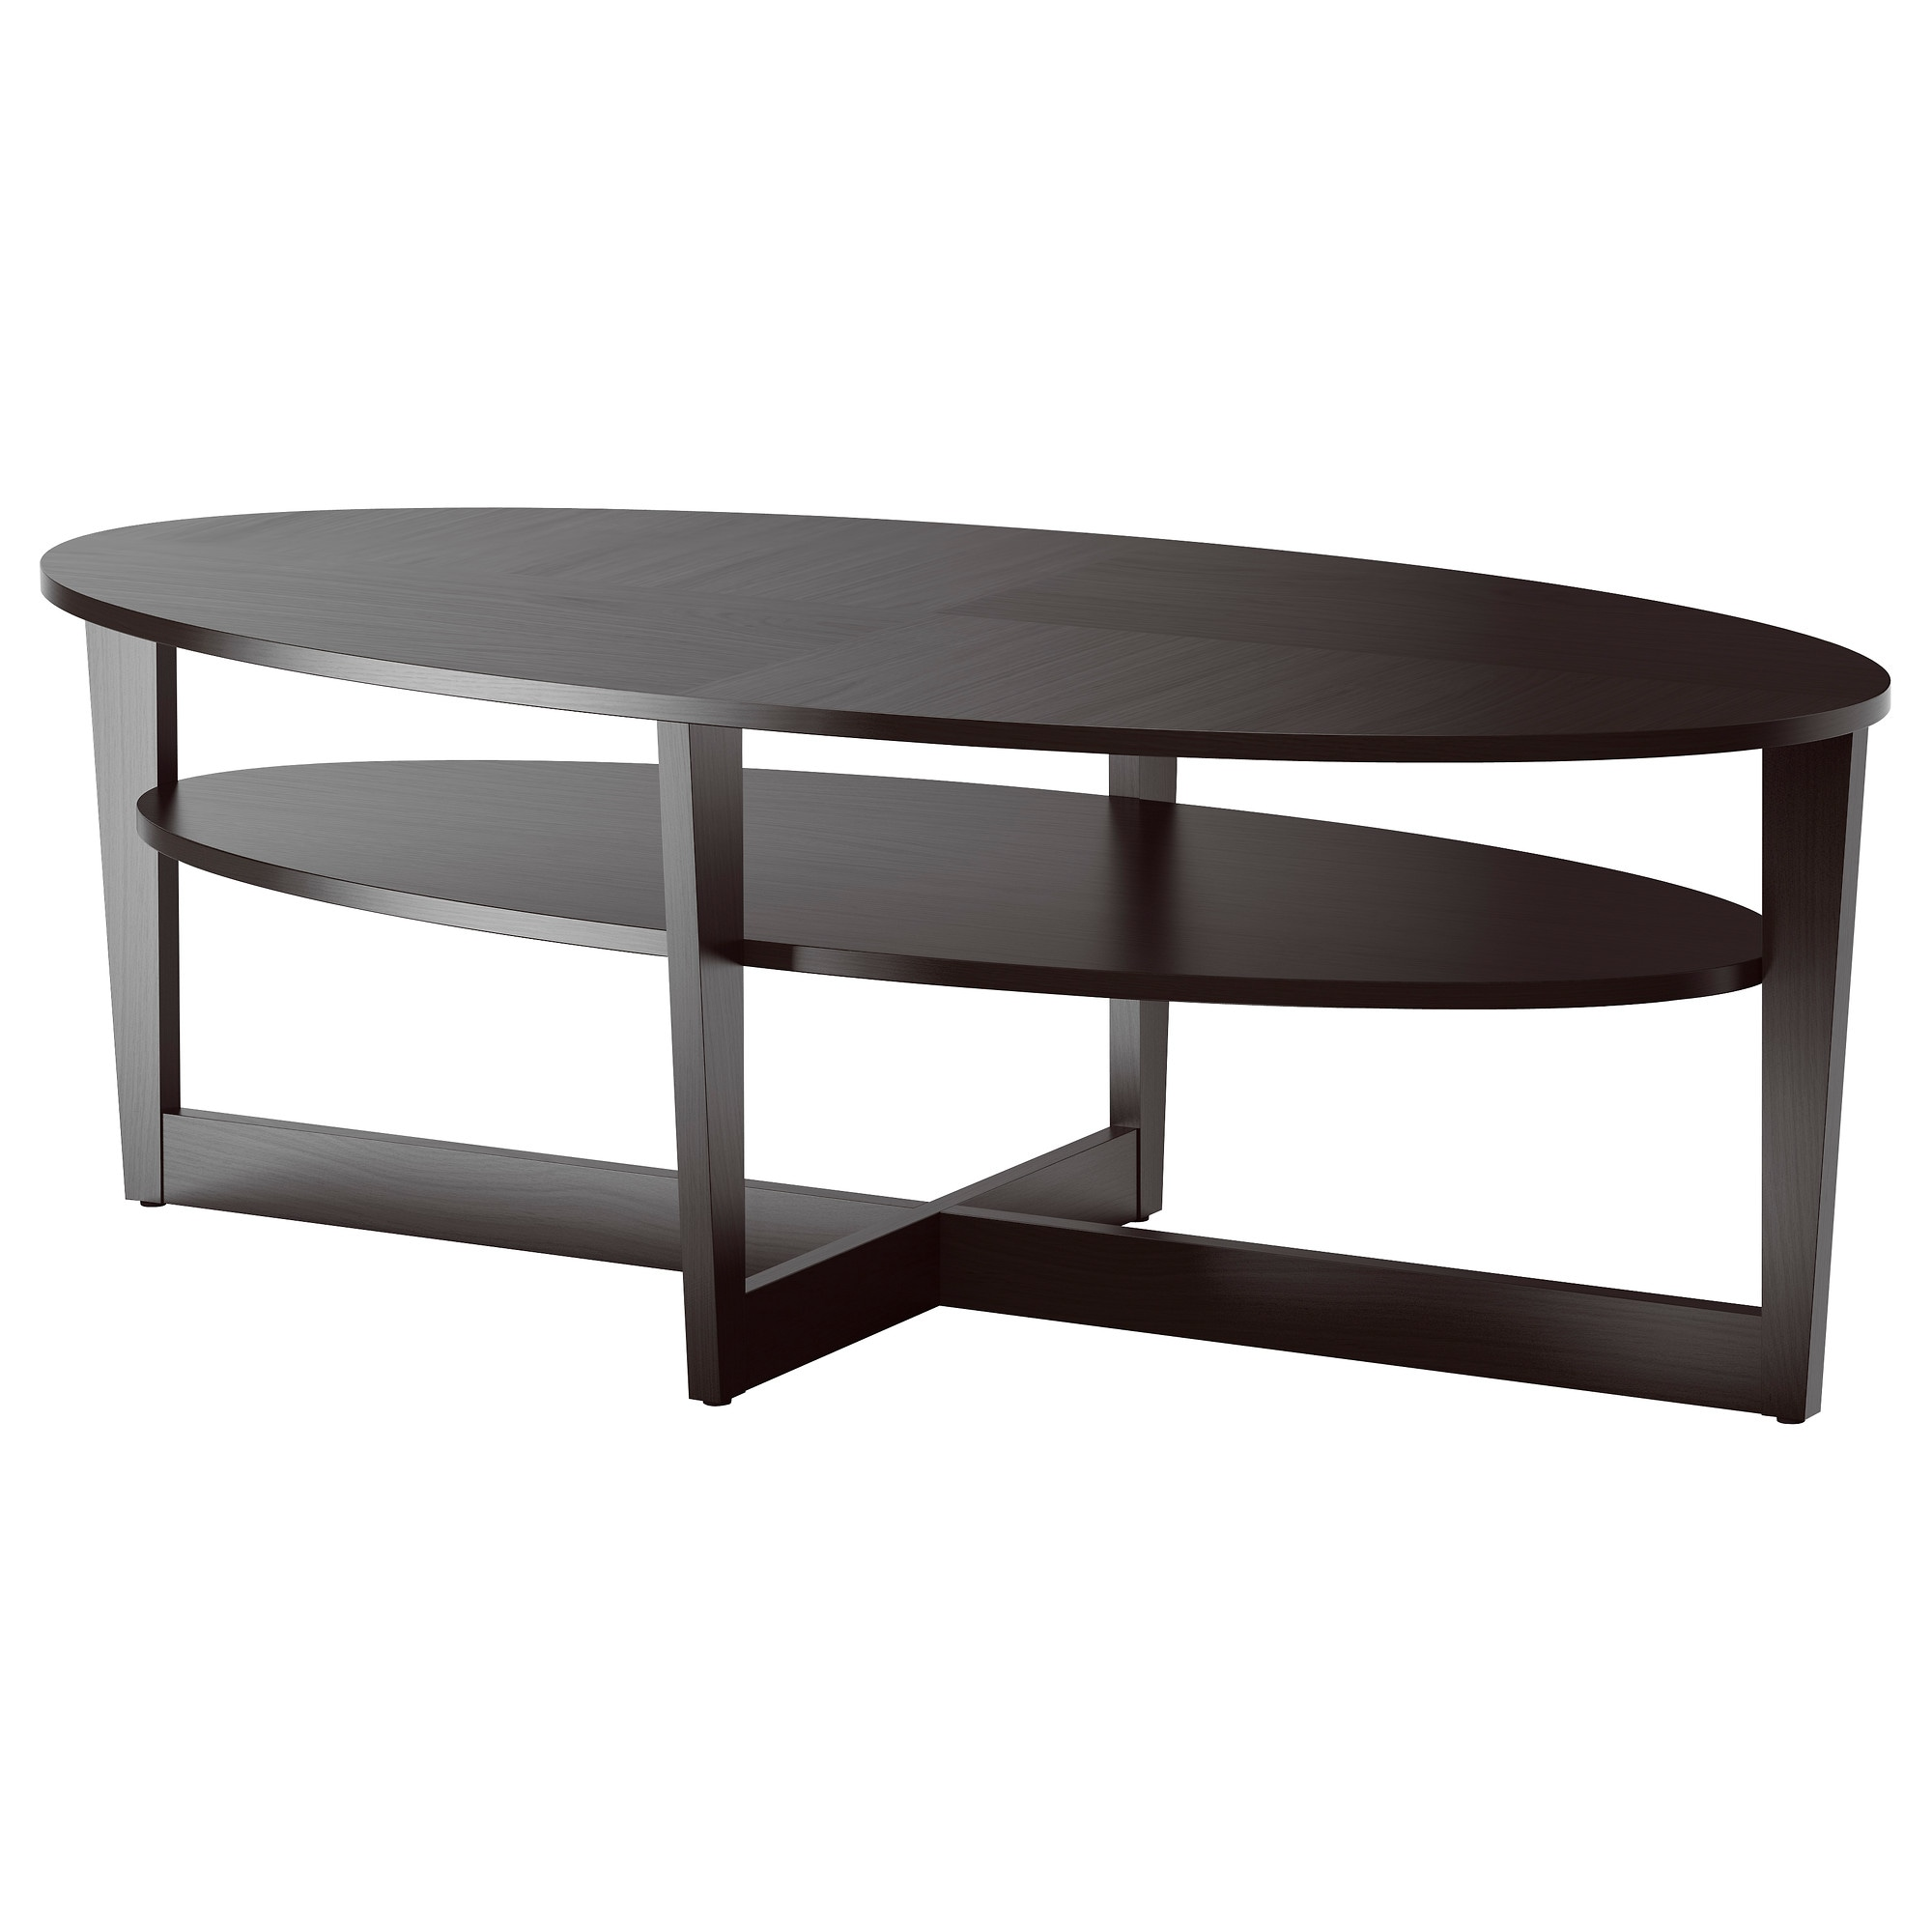 oval side table. Oval Side Table T